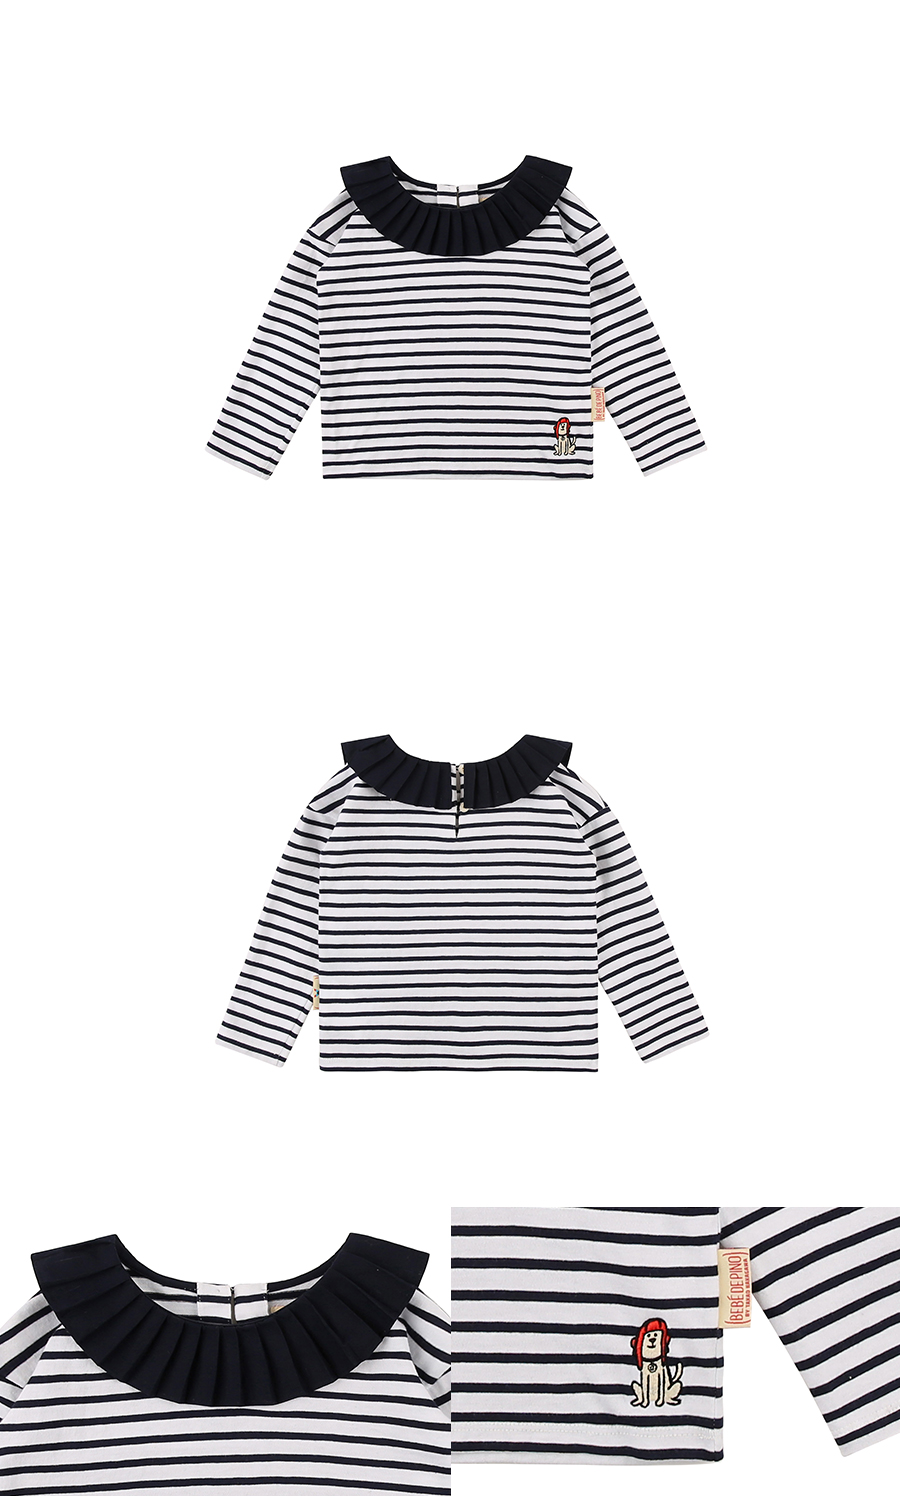 Puppy pleats collar stripe tee 상세 이미지